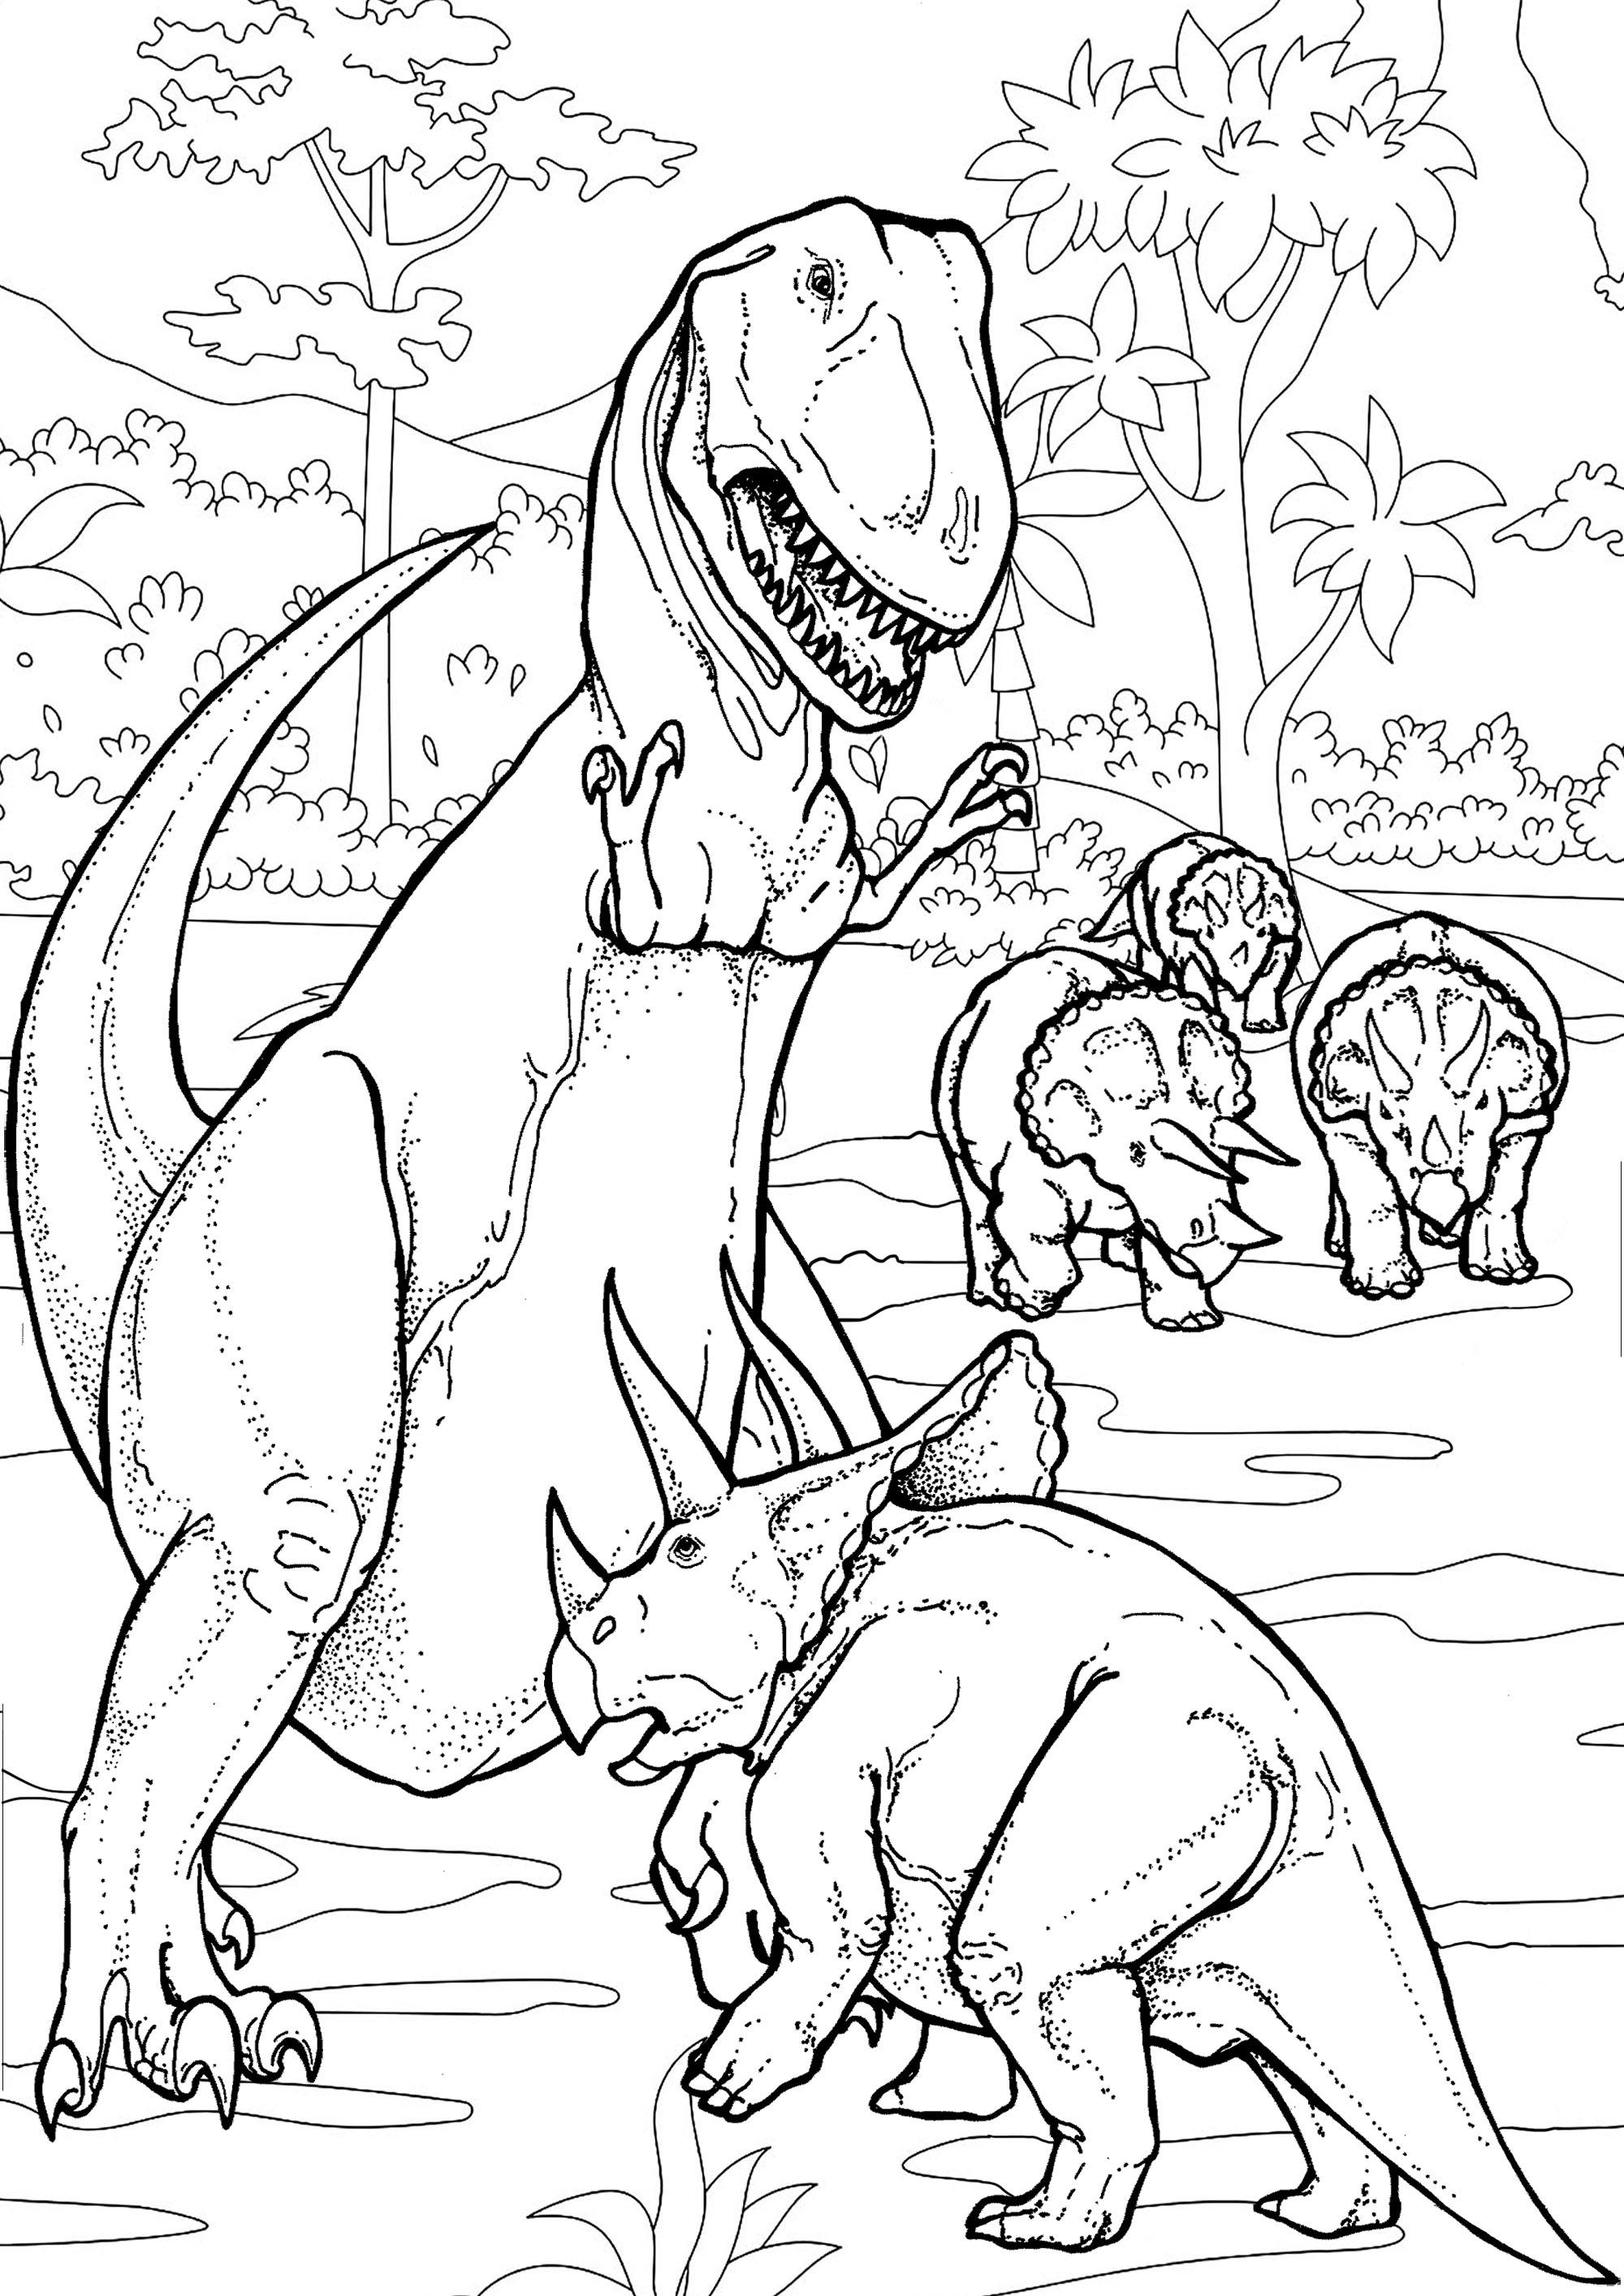 Dinosaurs Battle - Dinosaurs Adult Coloring Pages